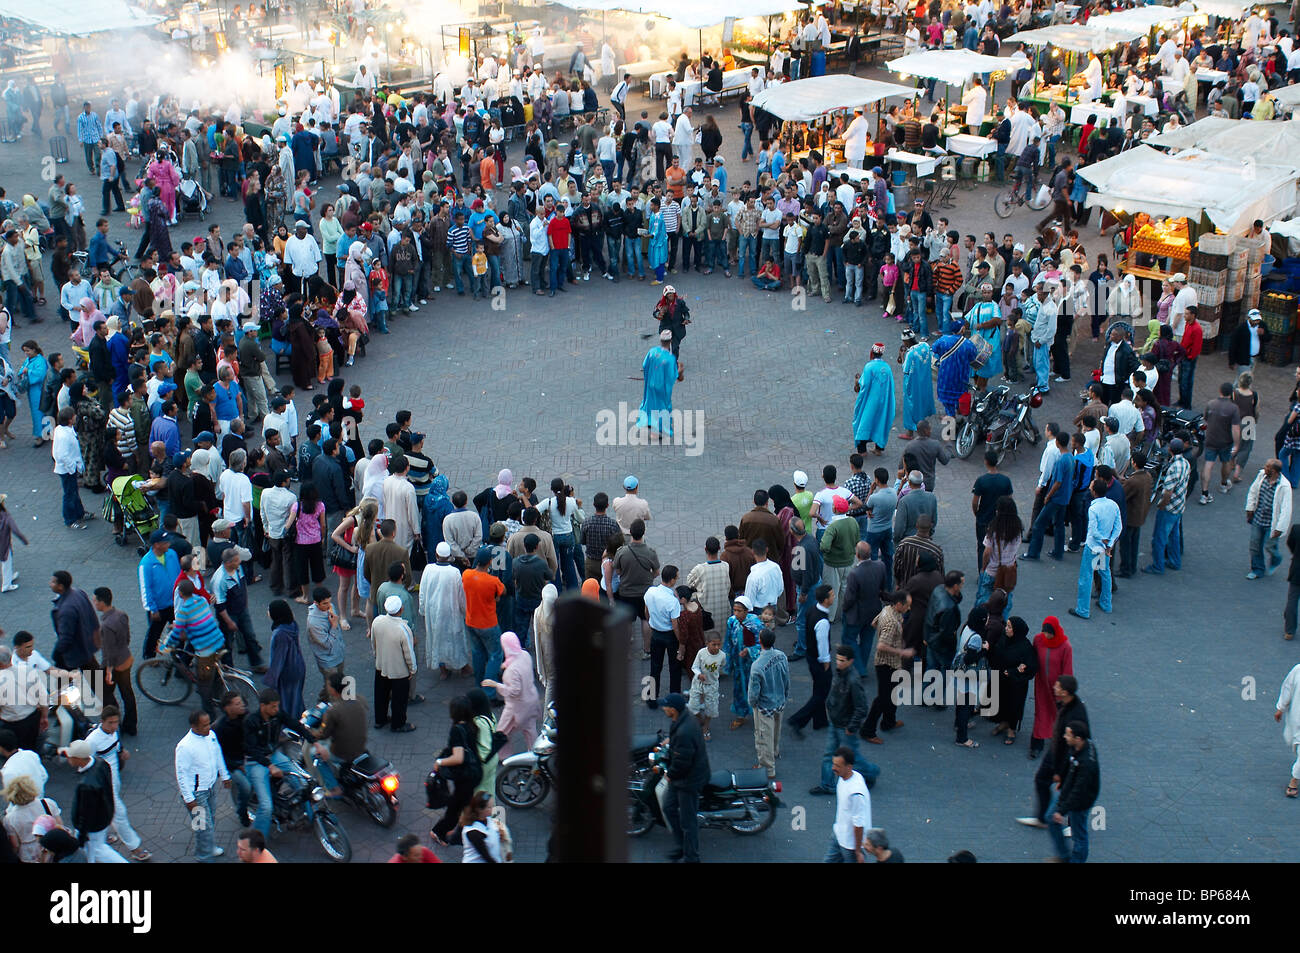 Berber musicians and dancers gathering a crowd in the central market square of Jemaa El Fna in Marrakech Stock Photo